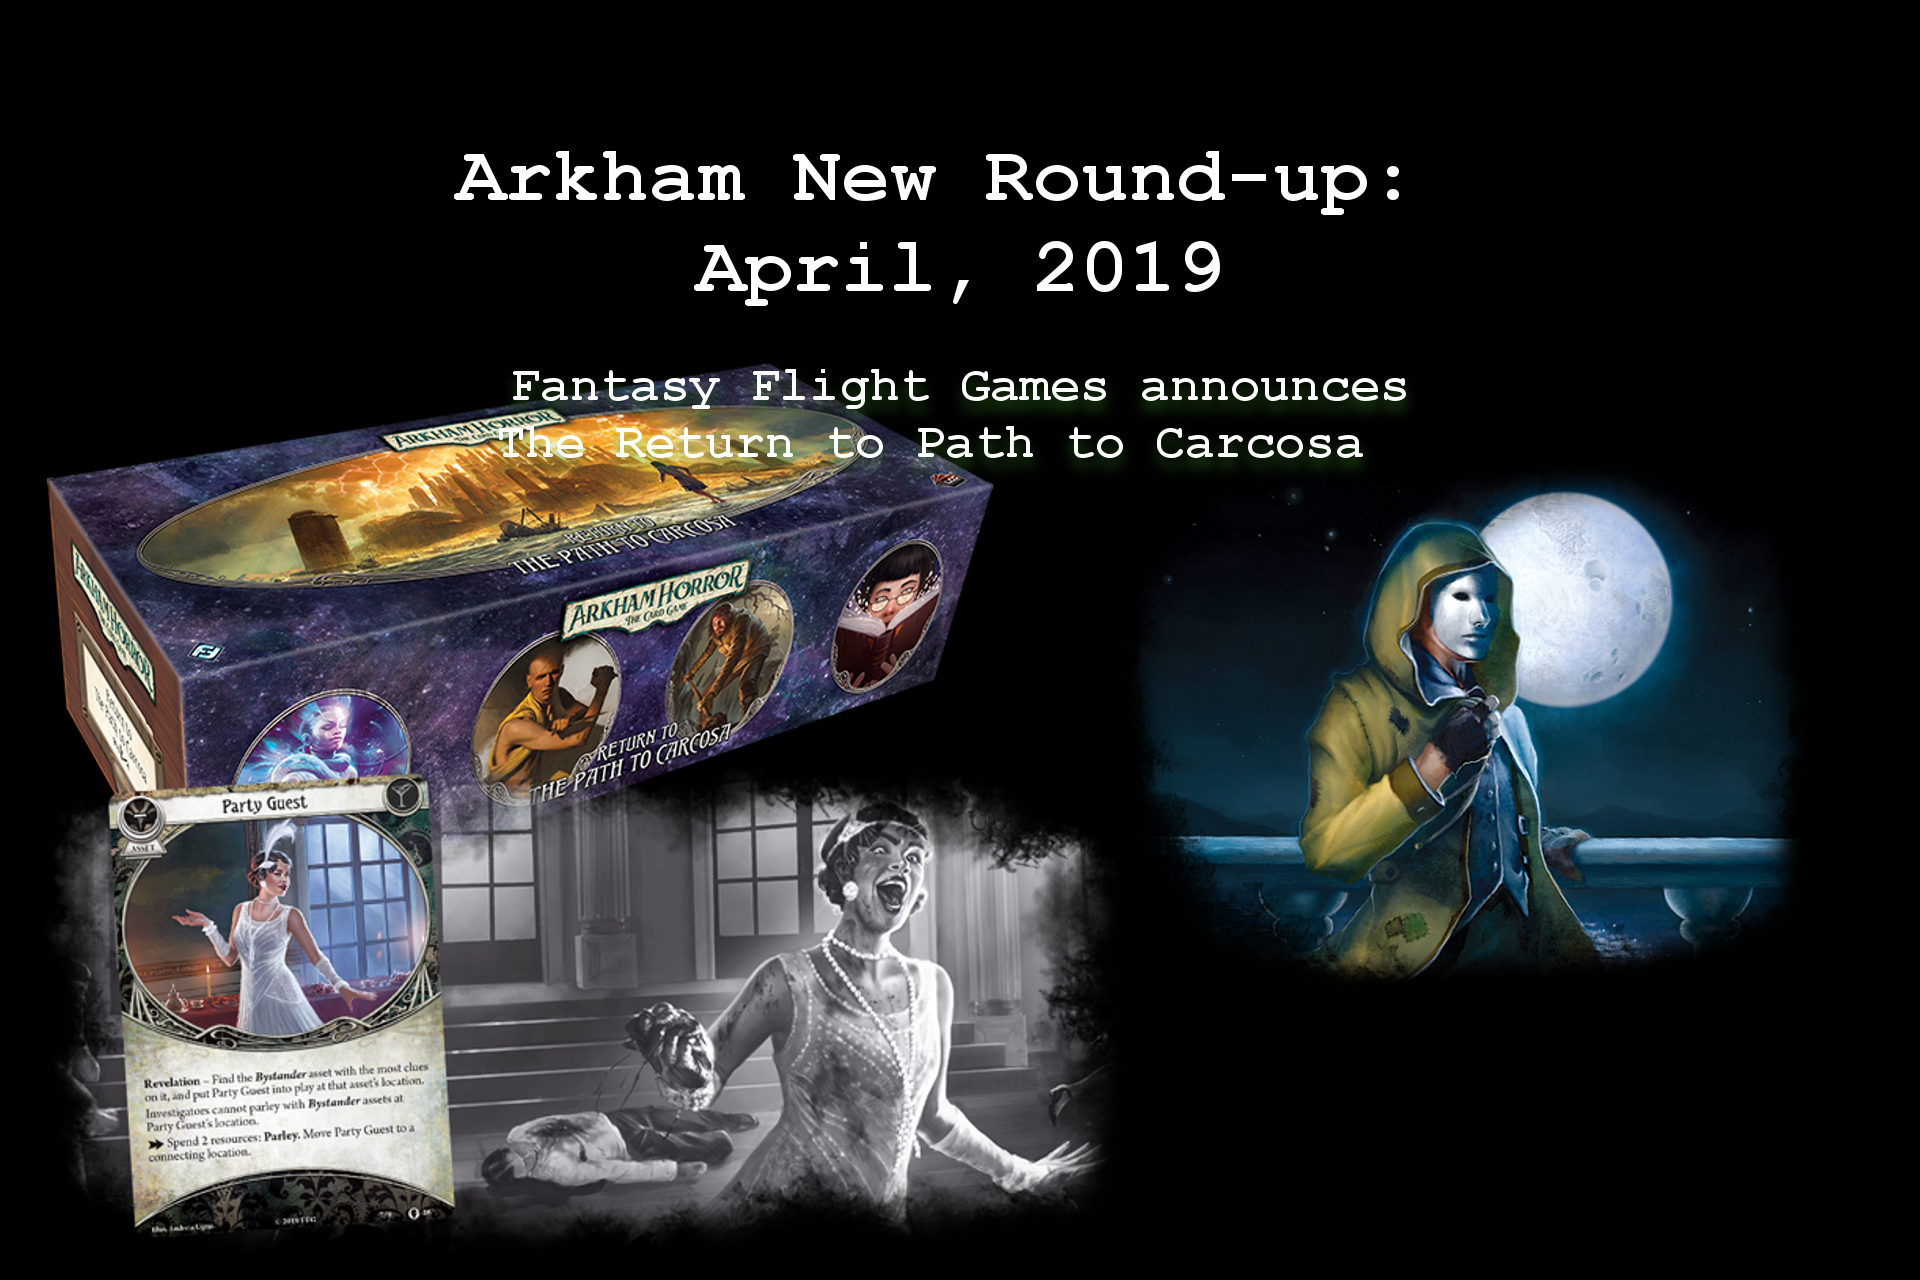 Arkham News Round up April 2019 return to carcosa.jpg